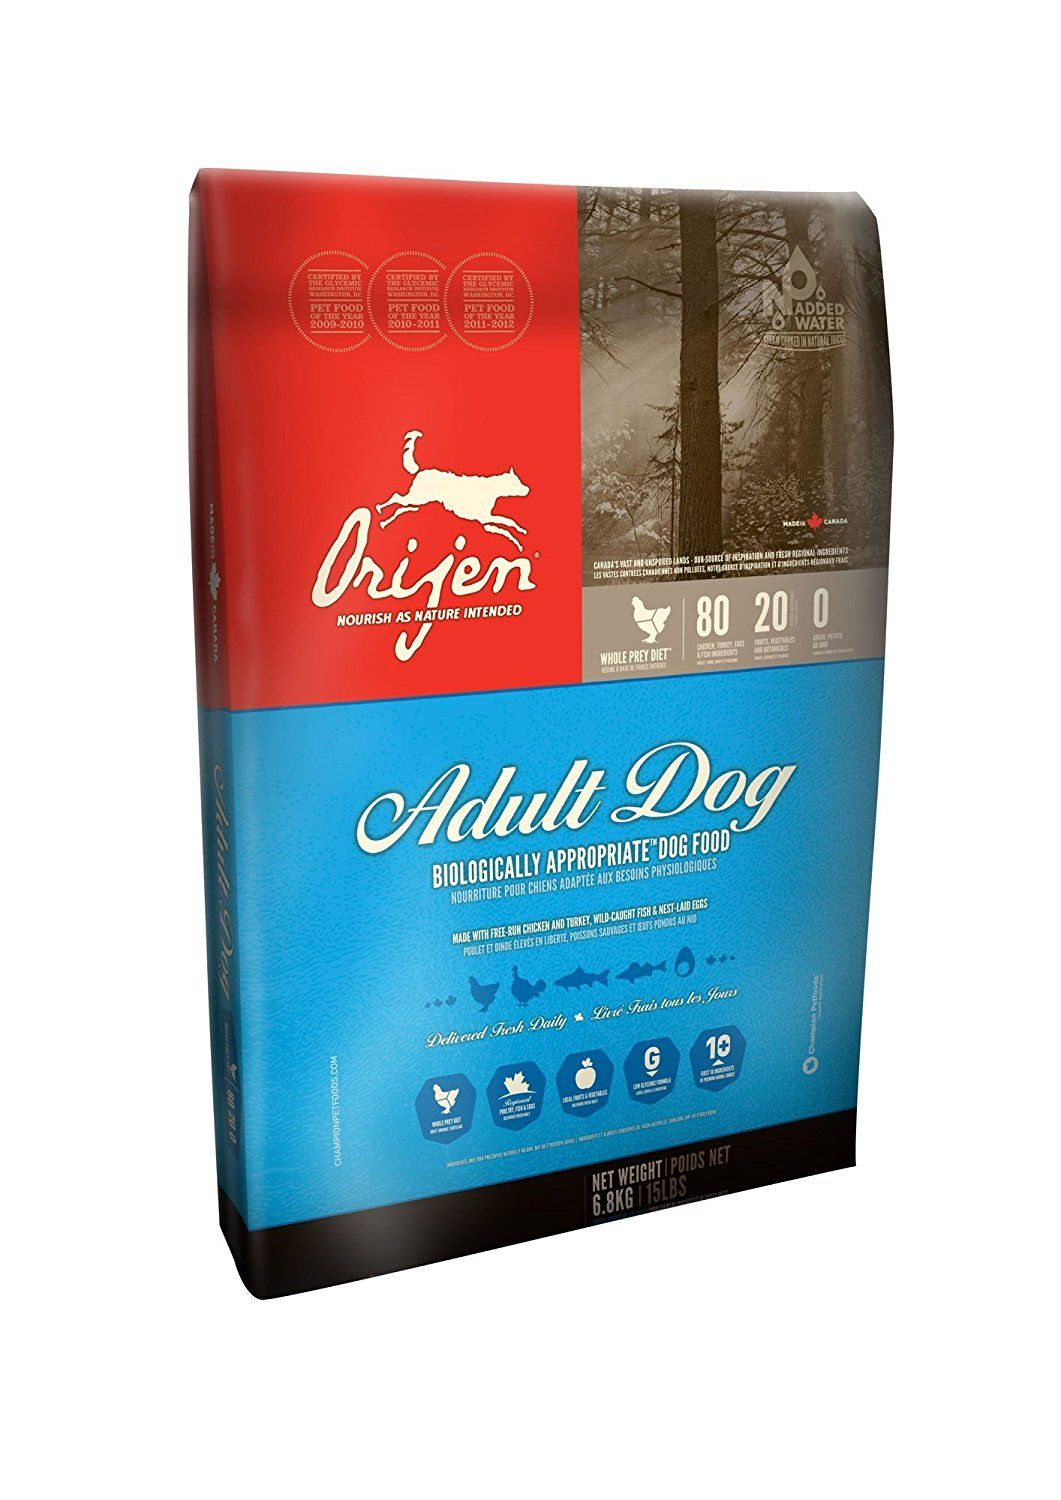 Australian Shepherd diet and nutrition Dog food reviews